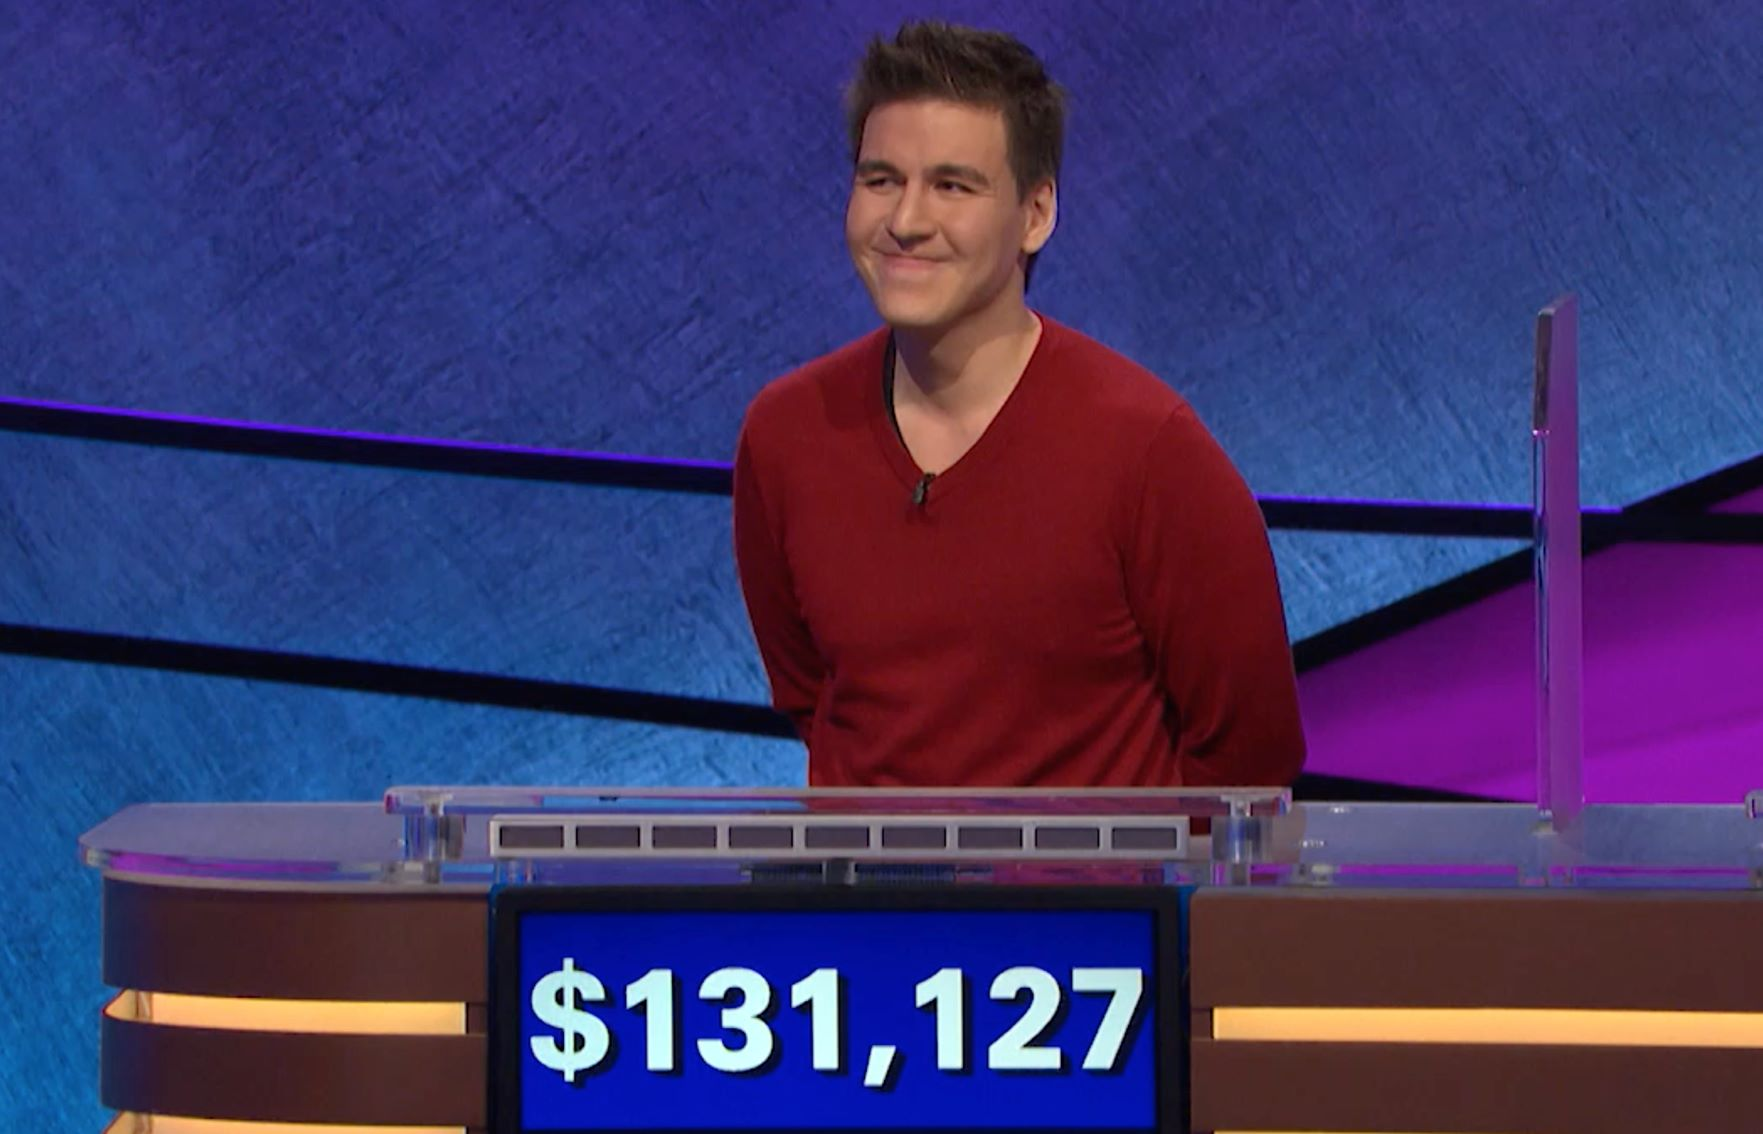 James Holzhauer on `Jeopardy!` (Image courtesy of Jeopardy Productions Inc.)